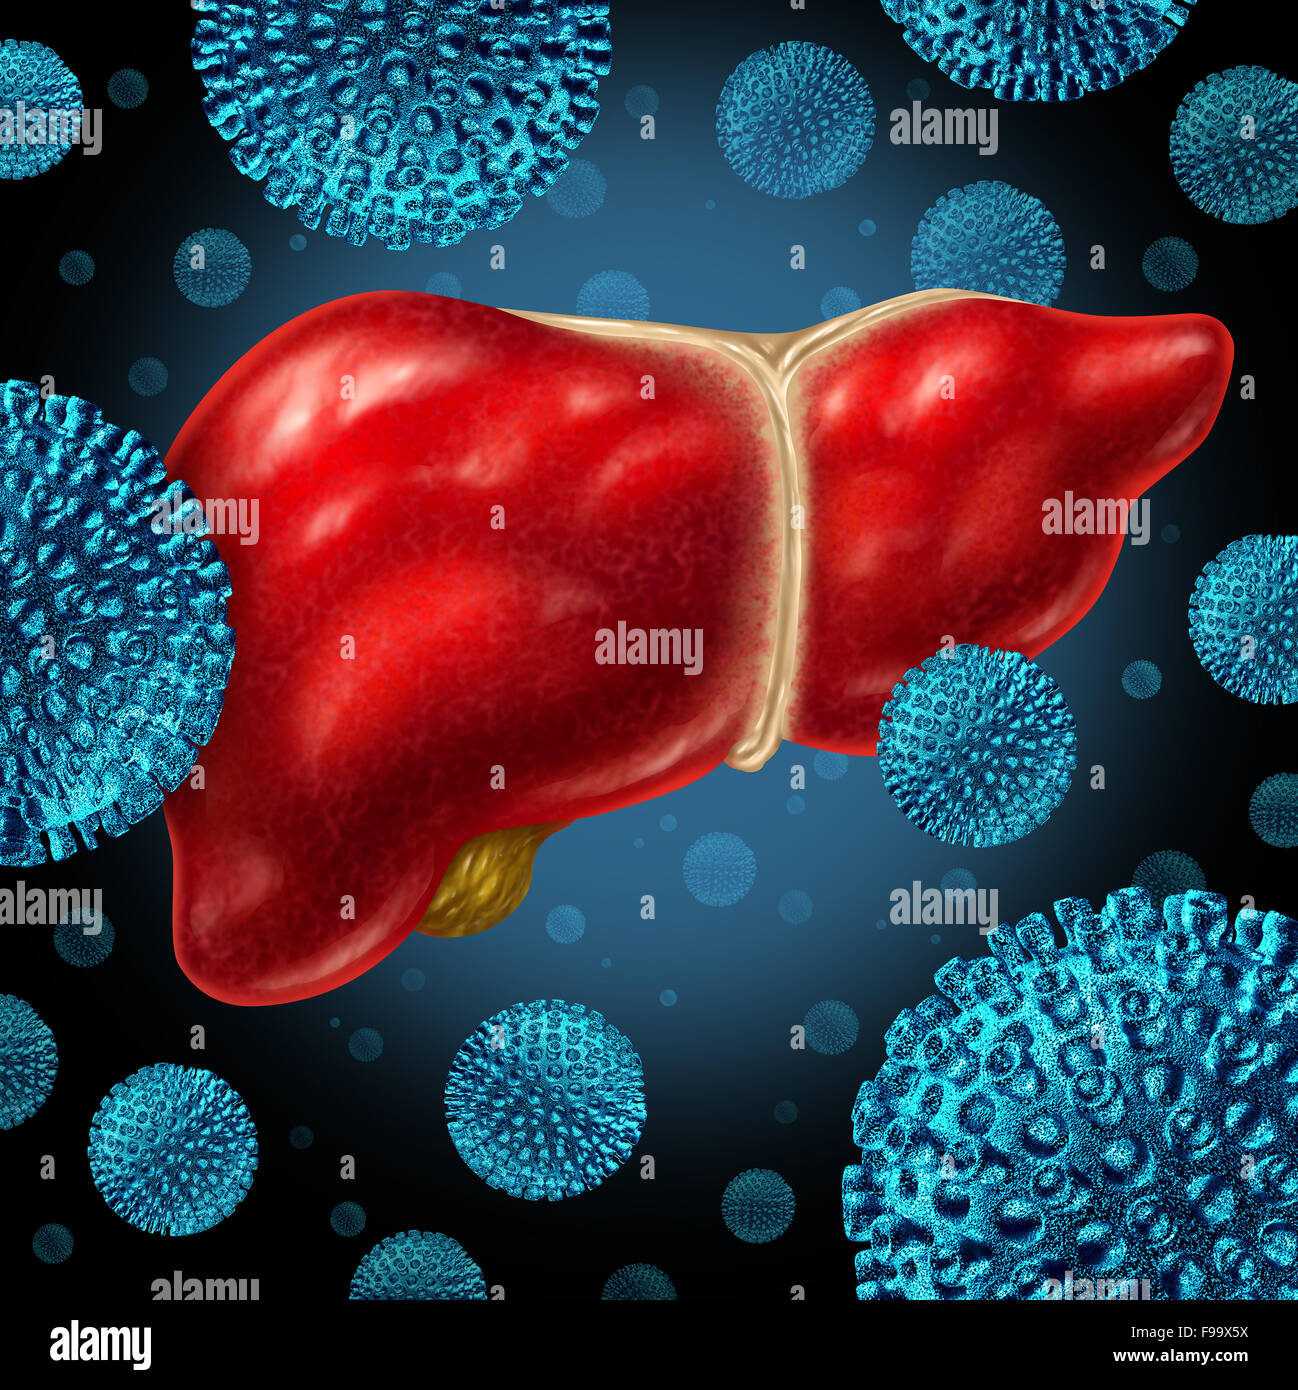 Liver infection as a human liver infected by the hepatitis virus as a medical concept for the viral disease causing - Stock Image